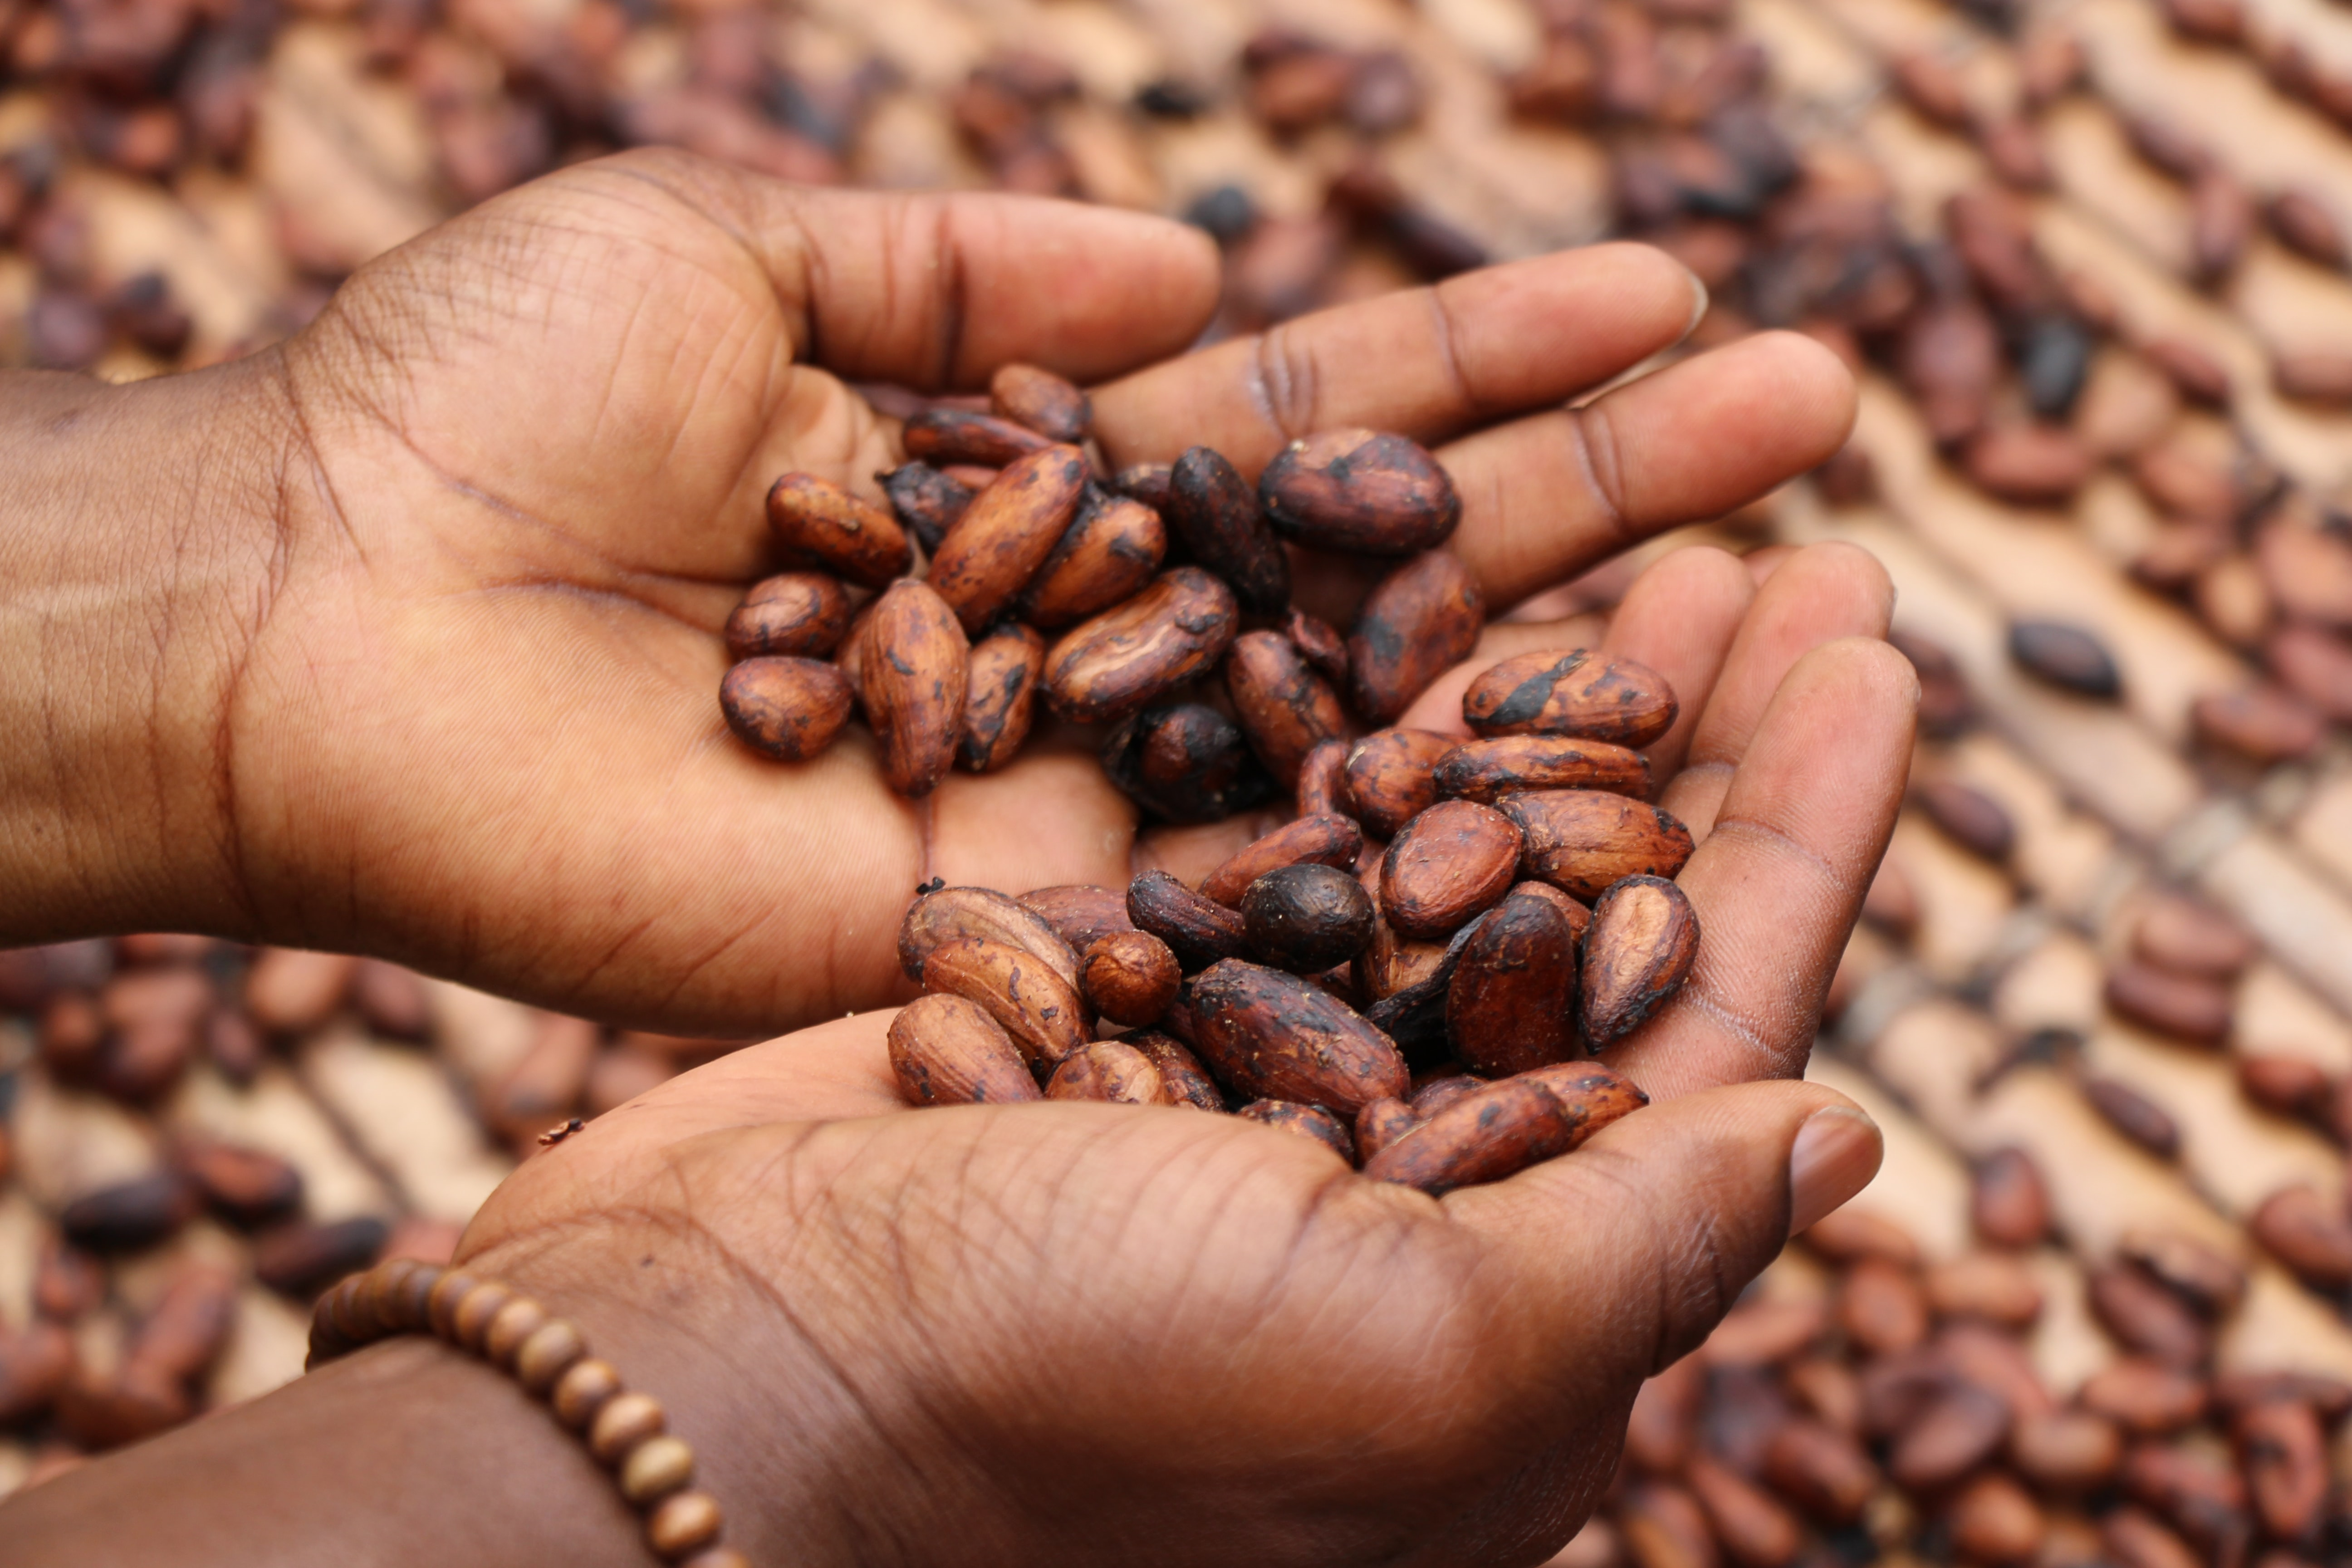 person holding brown and black seeds